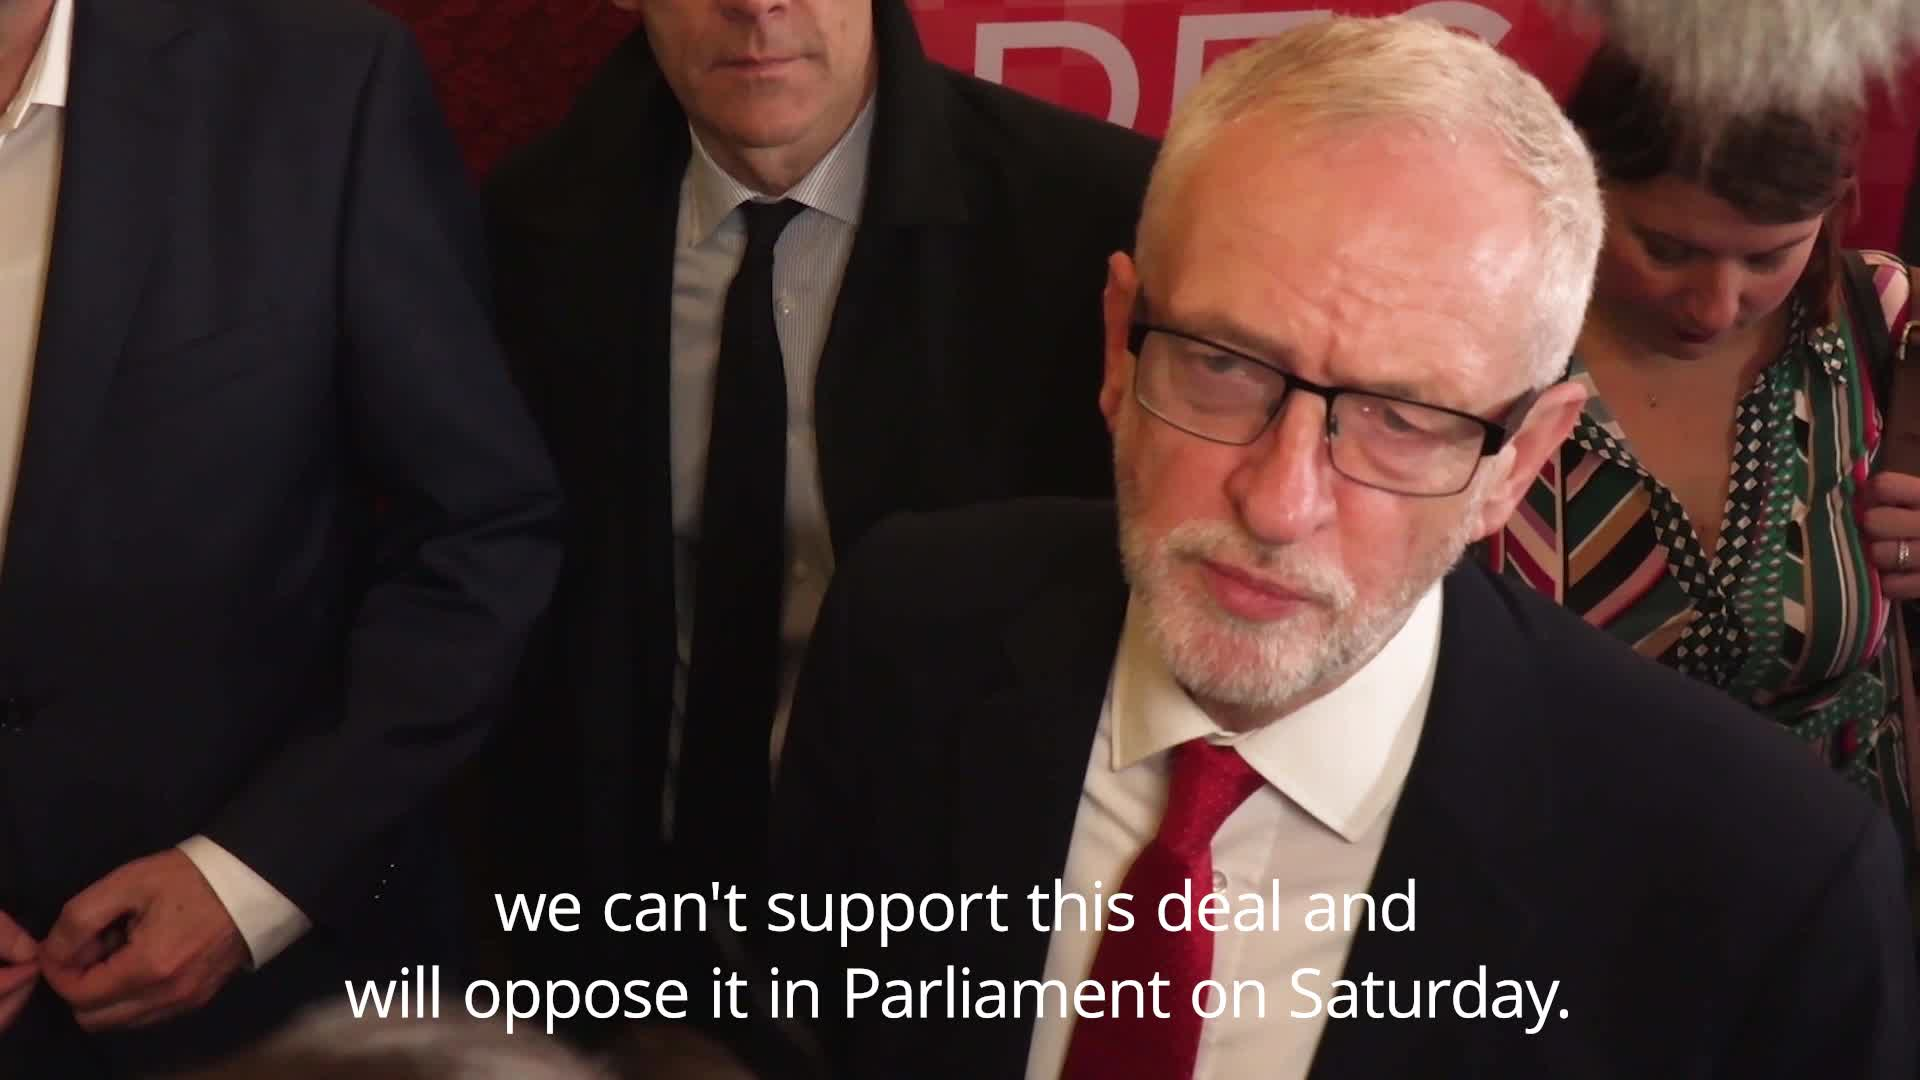 Corbyn's 'Death Bed Conversion' To A Second Brexit Referendum 'Too Late To Help Labour' In An Election, Senior MP Says